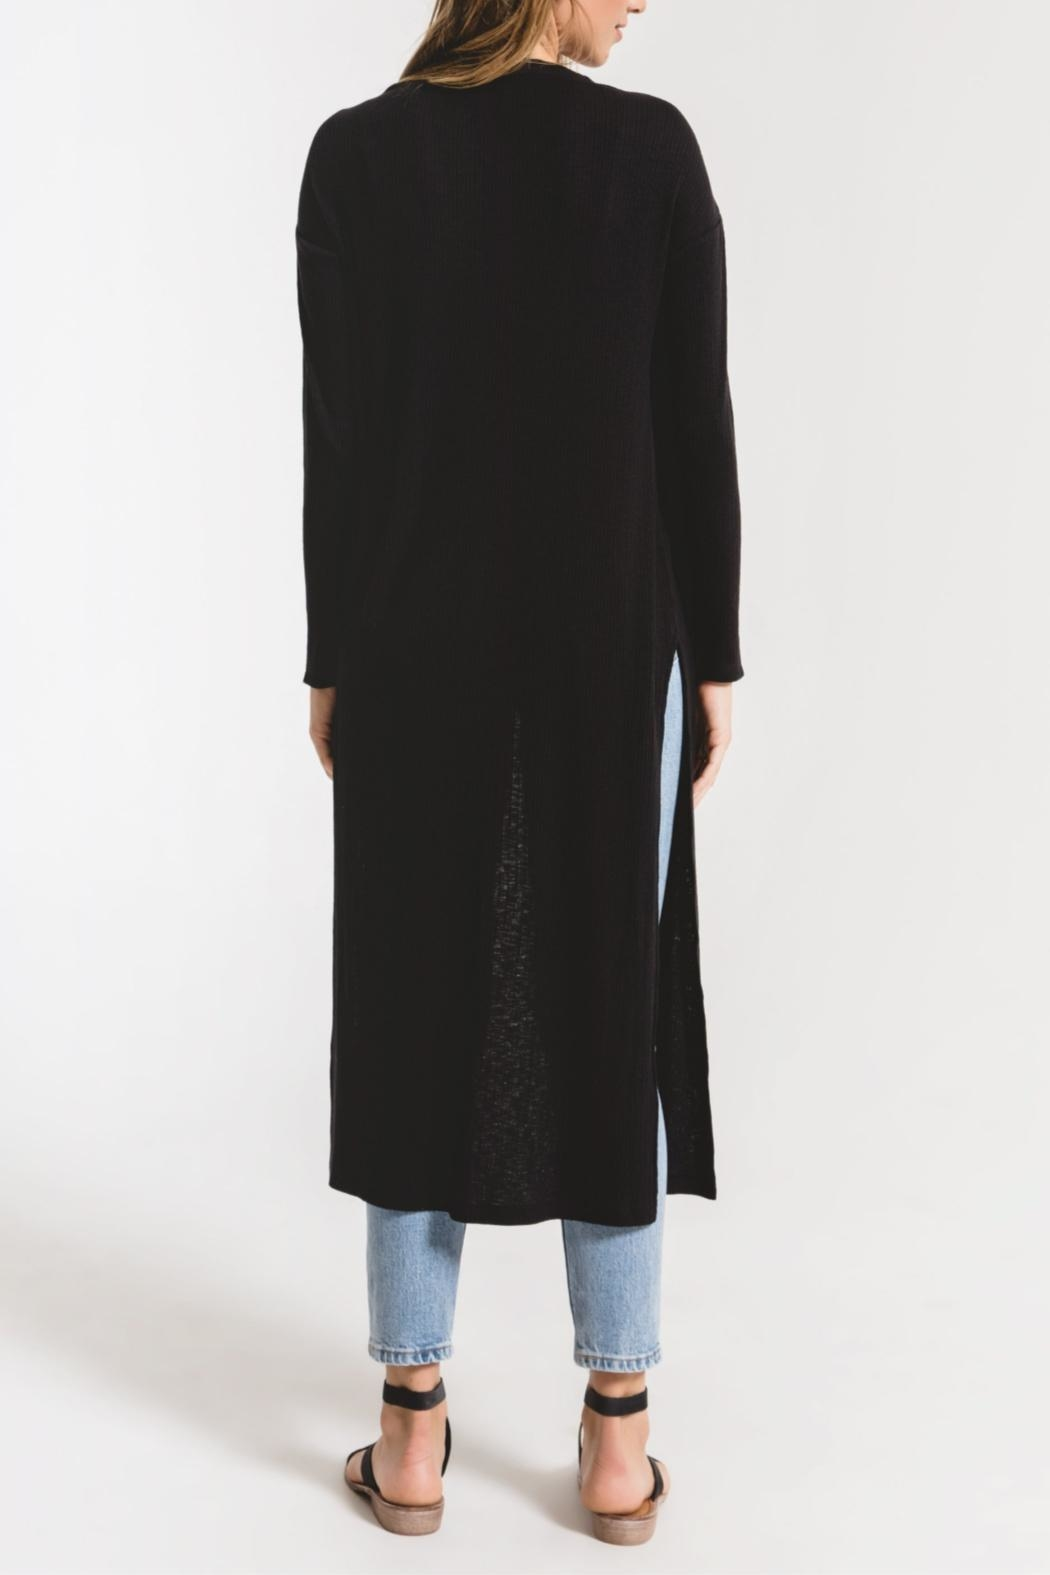 z supply Textured Rib Duster Cardigan - Back Cropped Image